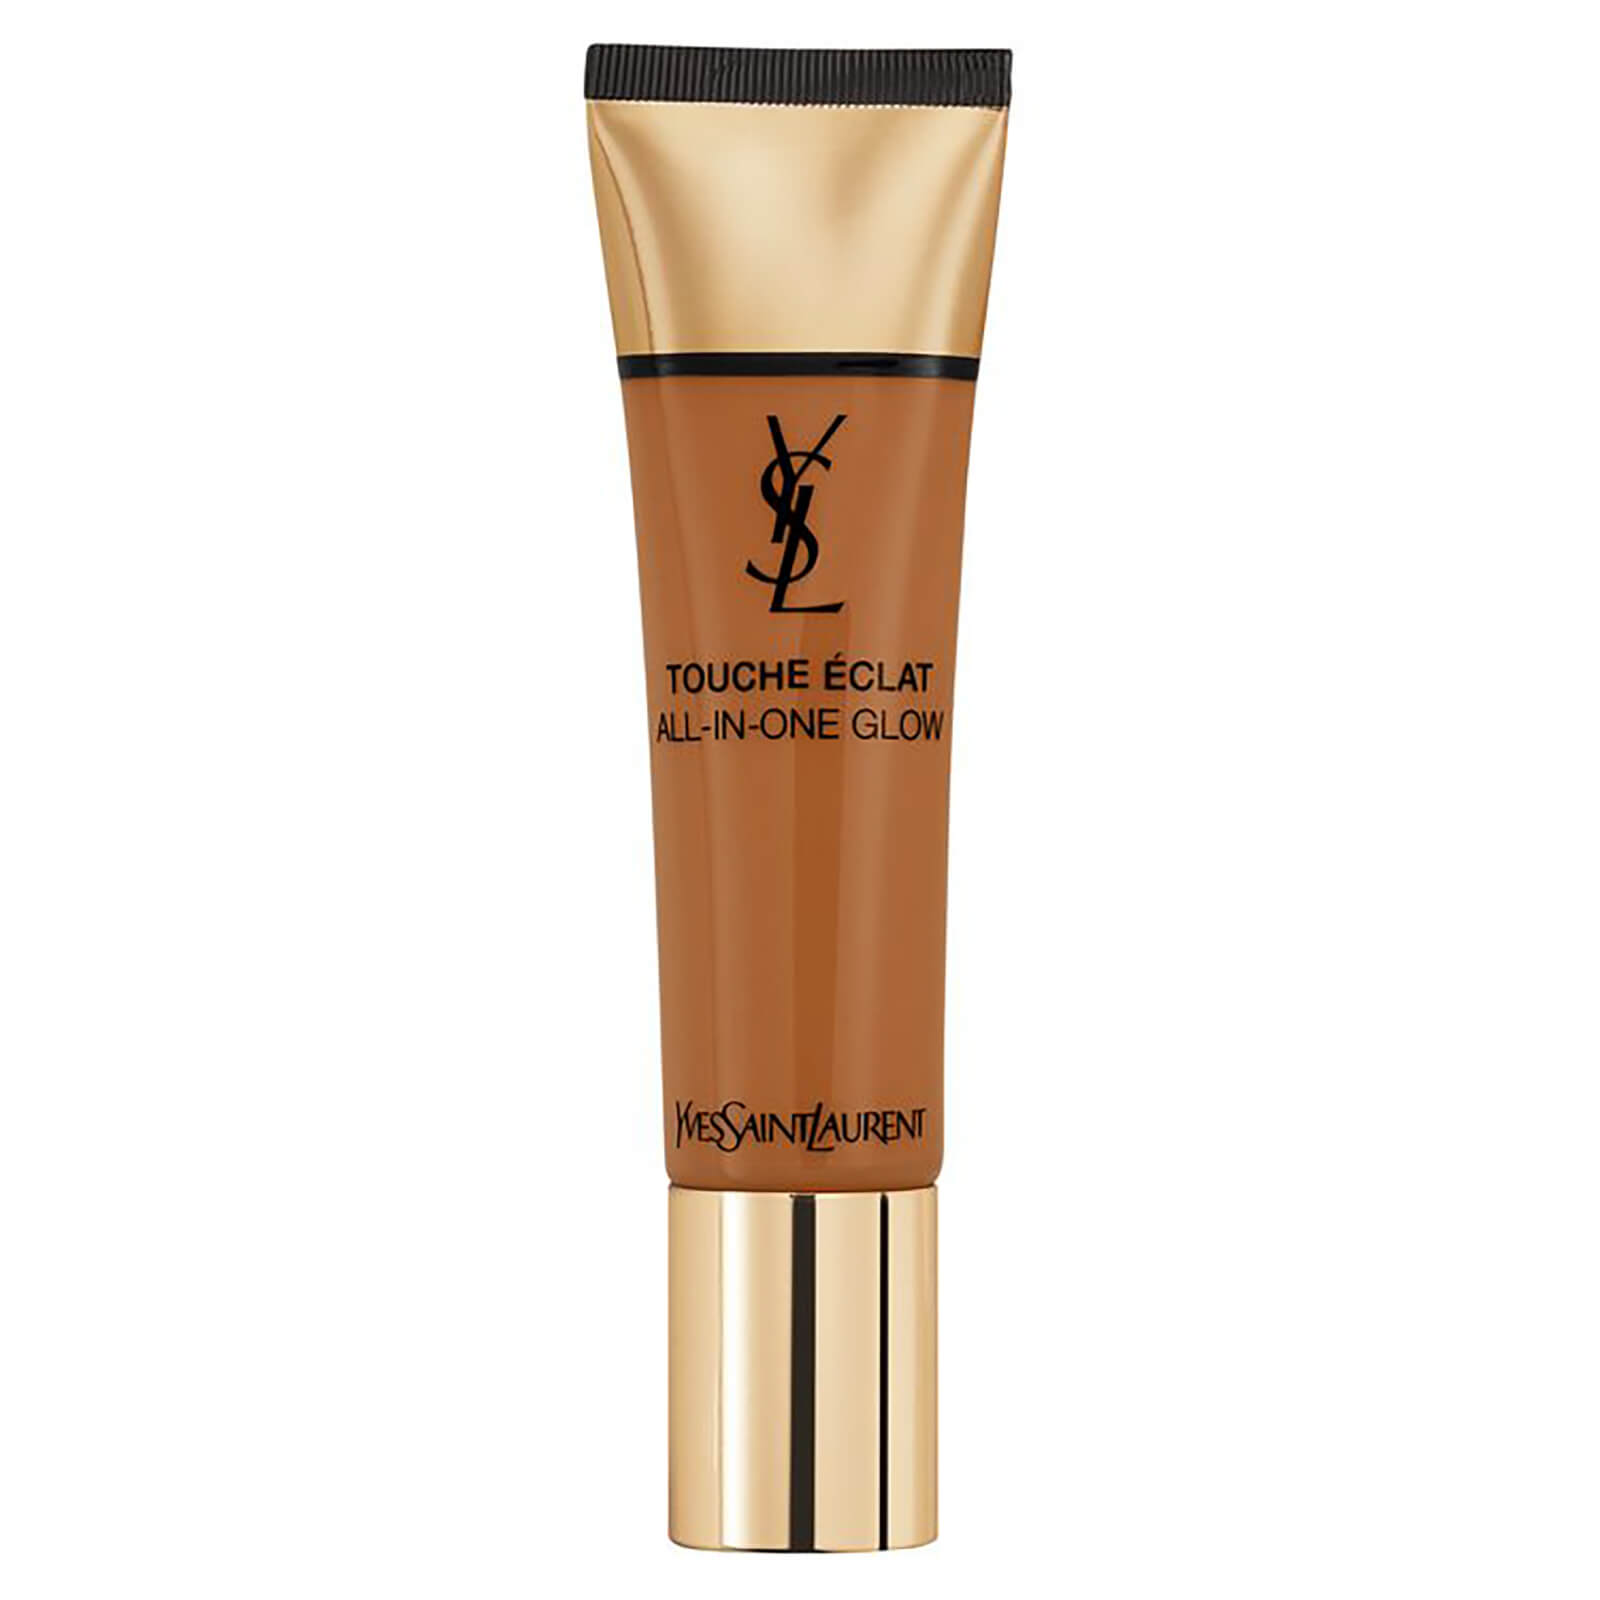 2200ef164ffa1 Yves Saint Laurent Touche Éclat All-In-One Glow Foundation 30ml (Various  Shades) | Free Shipping | Lookfantastic